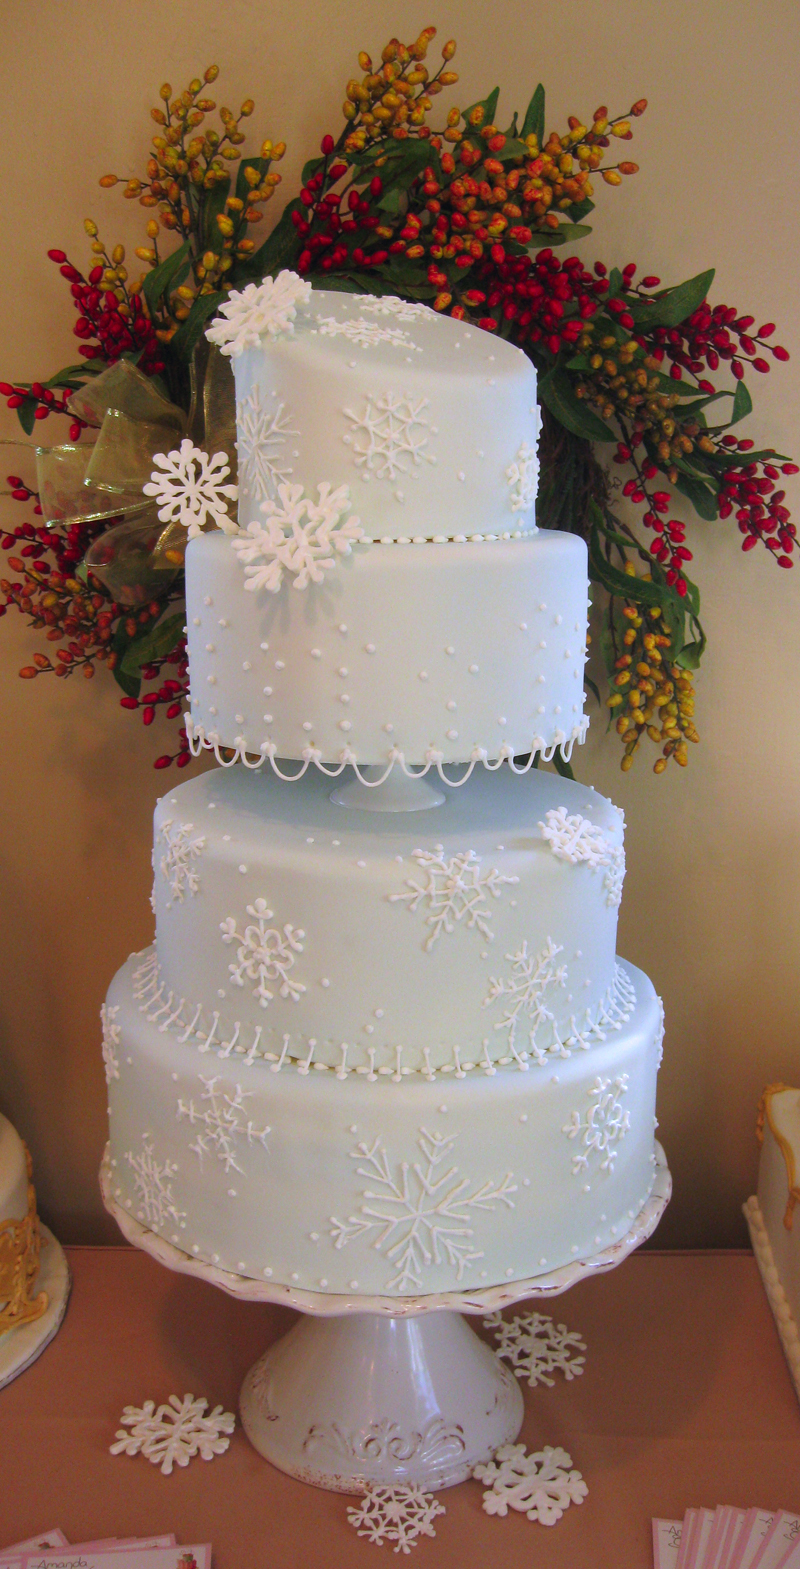 Snow flake winter wedding cake